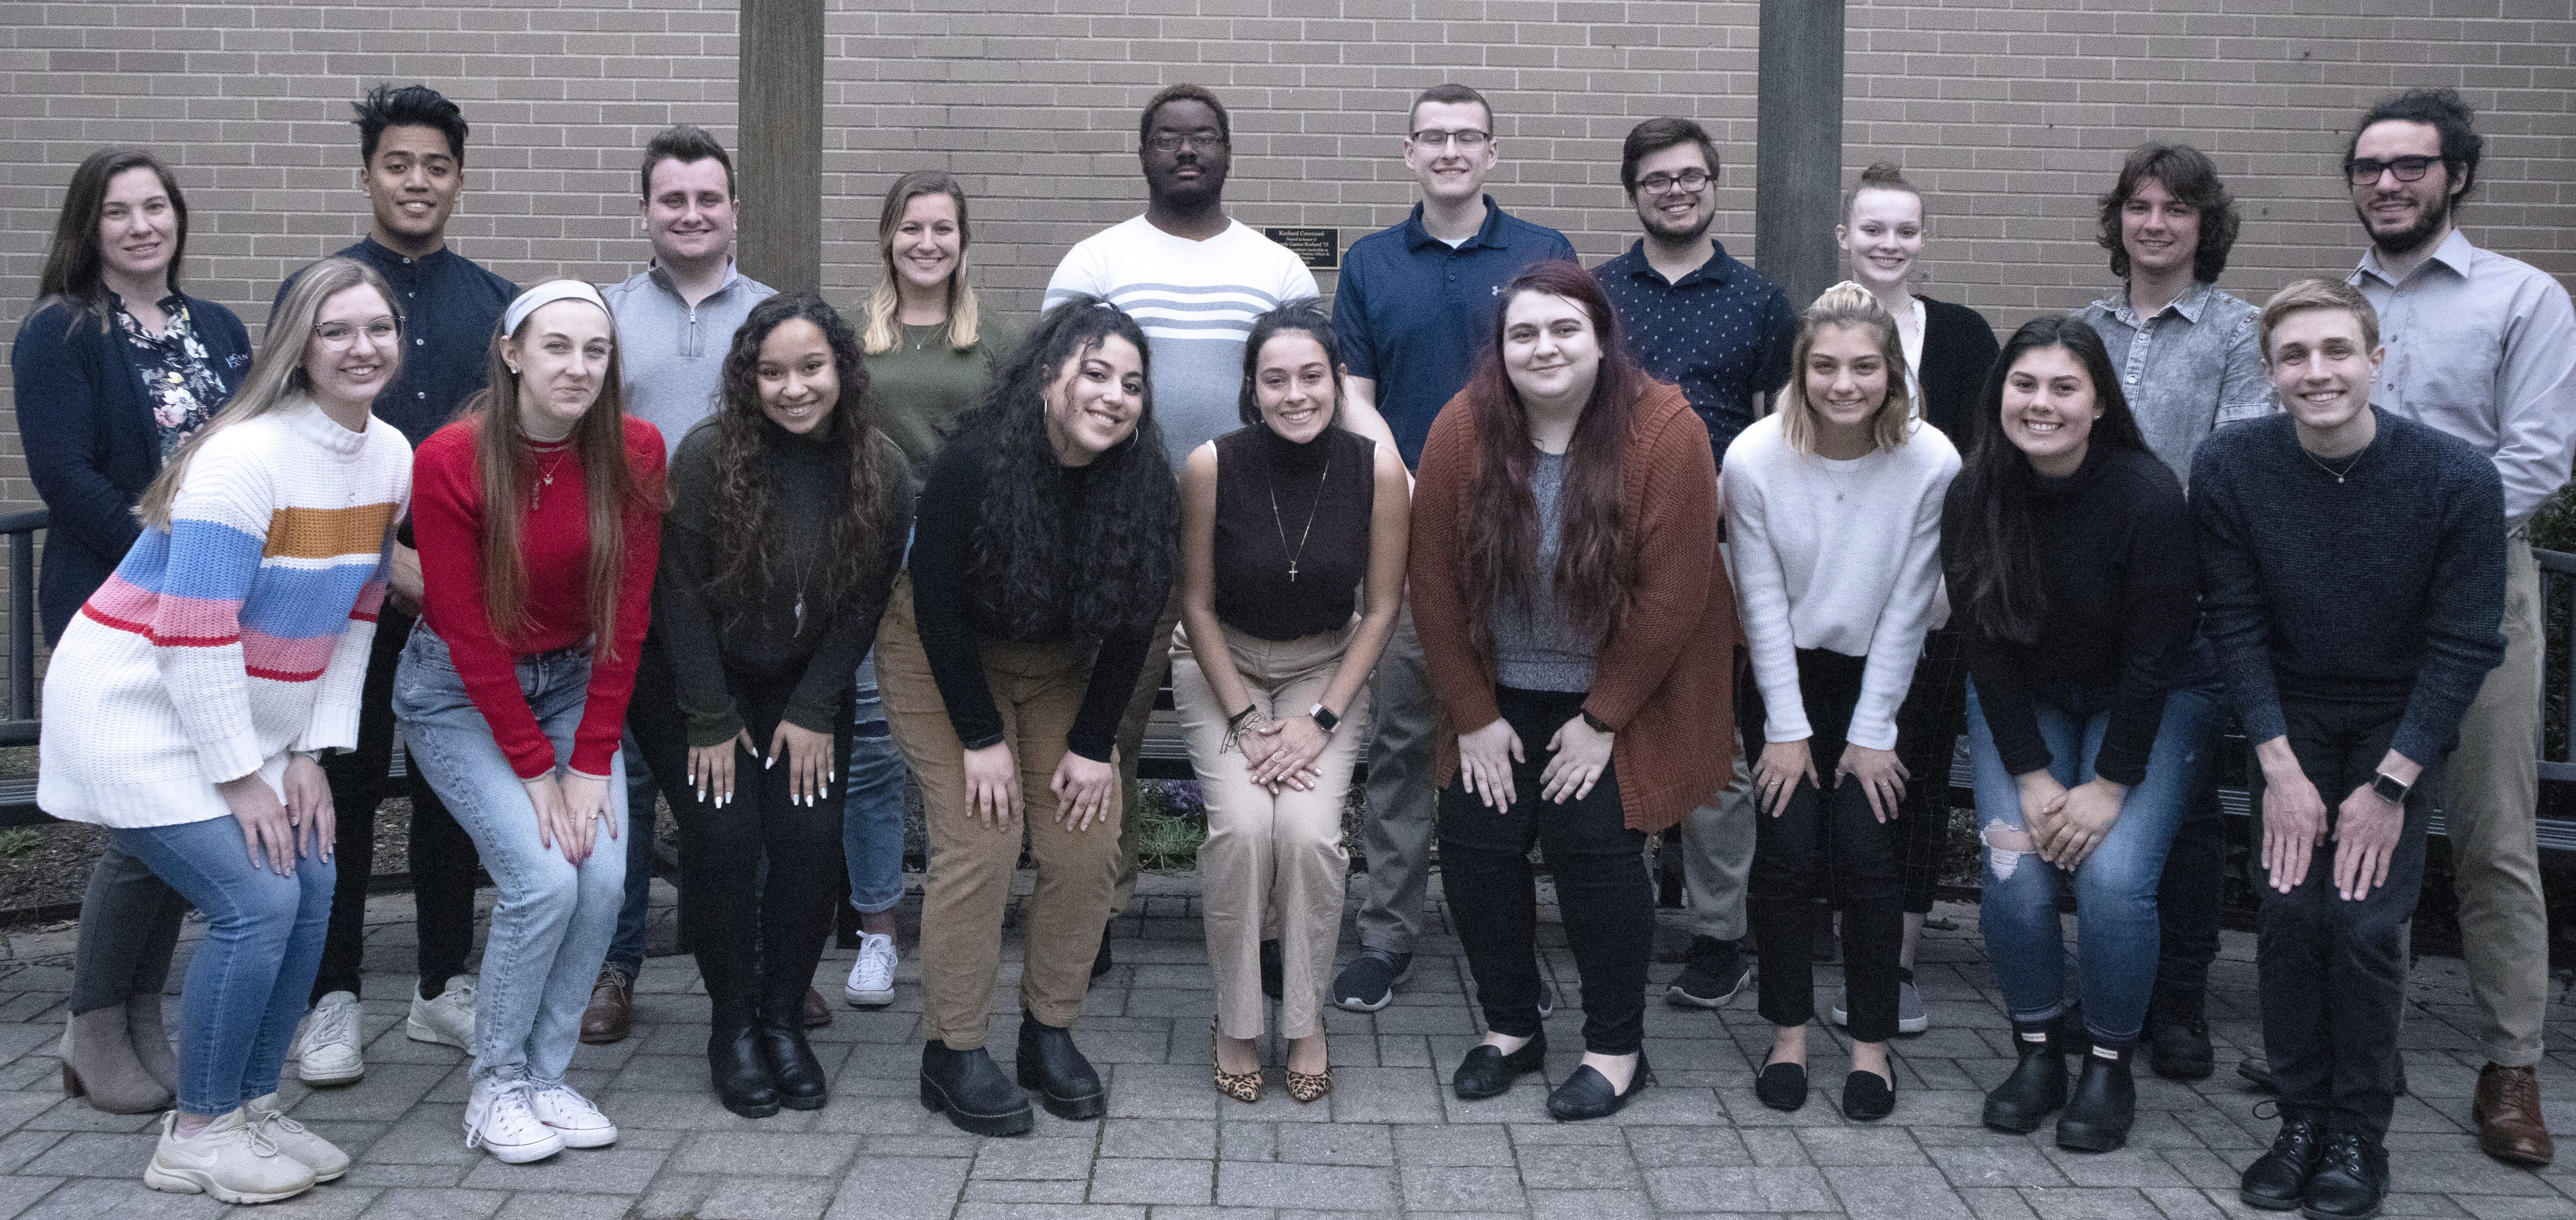 USG Group Photo Spring 2020